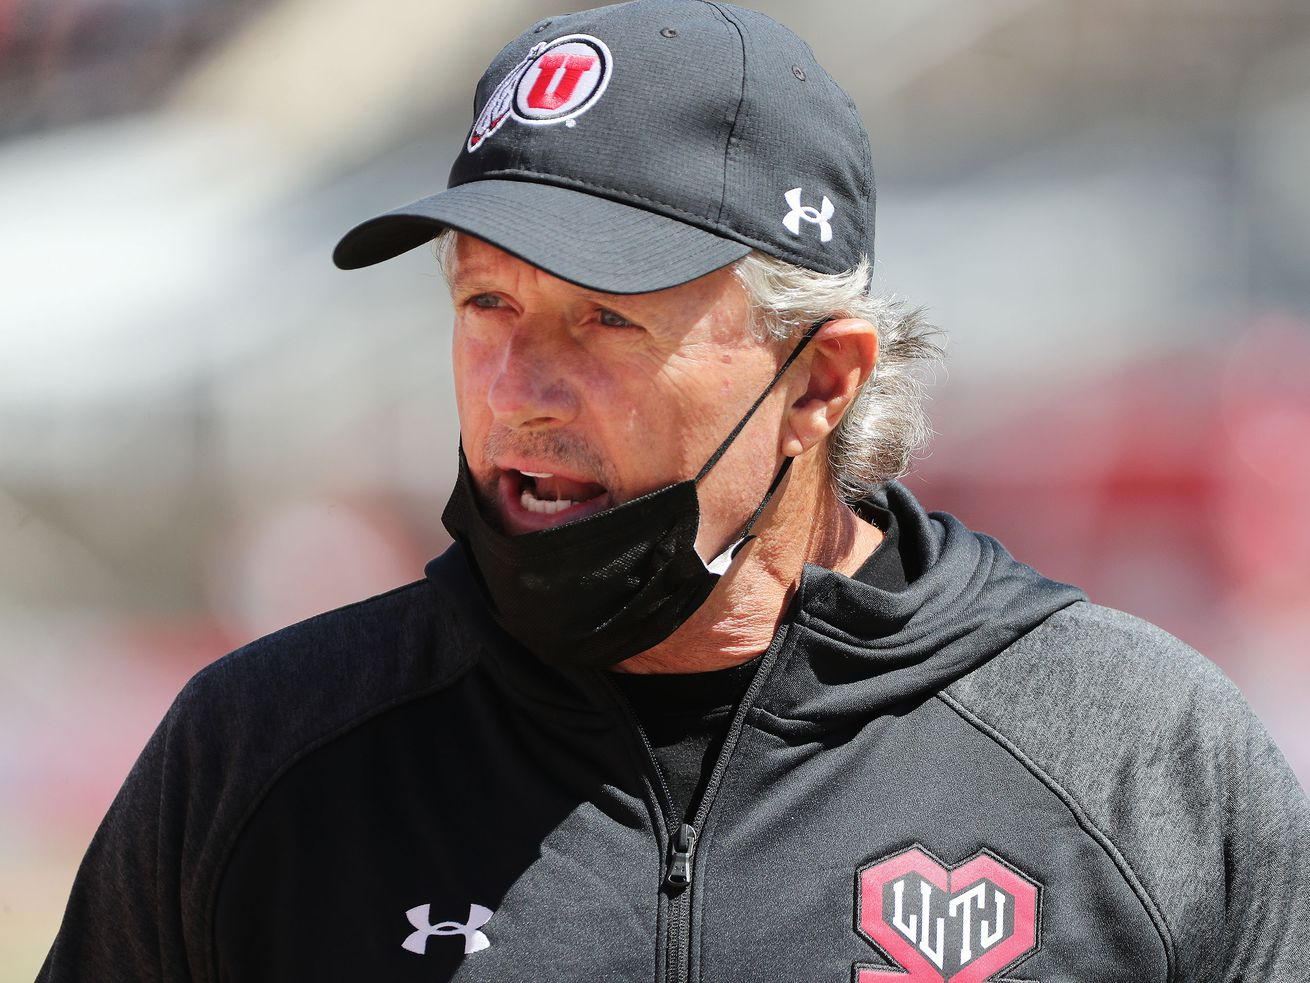 Utah Utes head coach Kyle Whittingham talks to players during the Red and White game in Salt Lake City on Saturday, April 17, 2021.